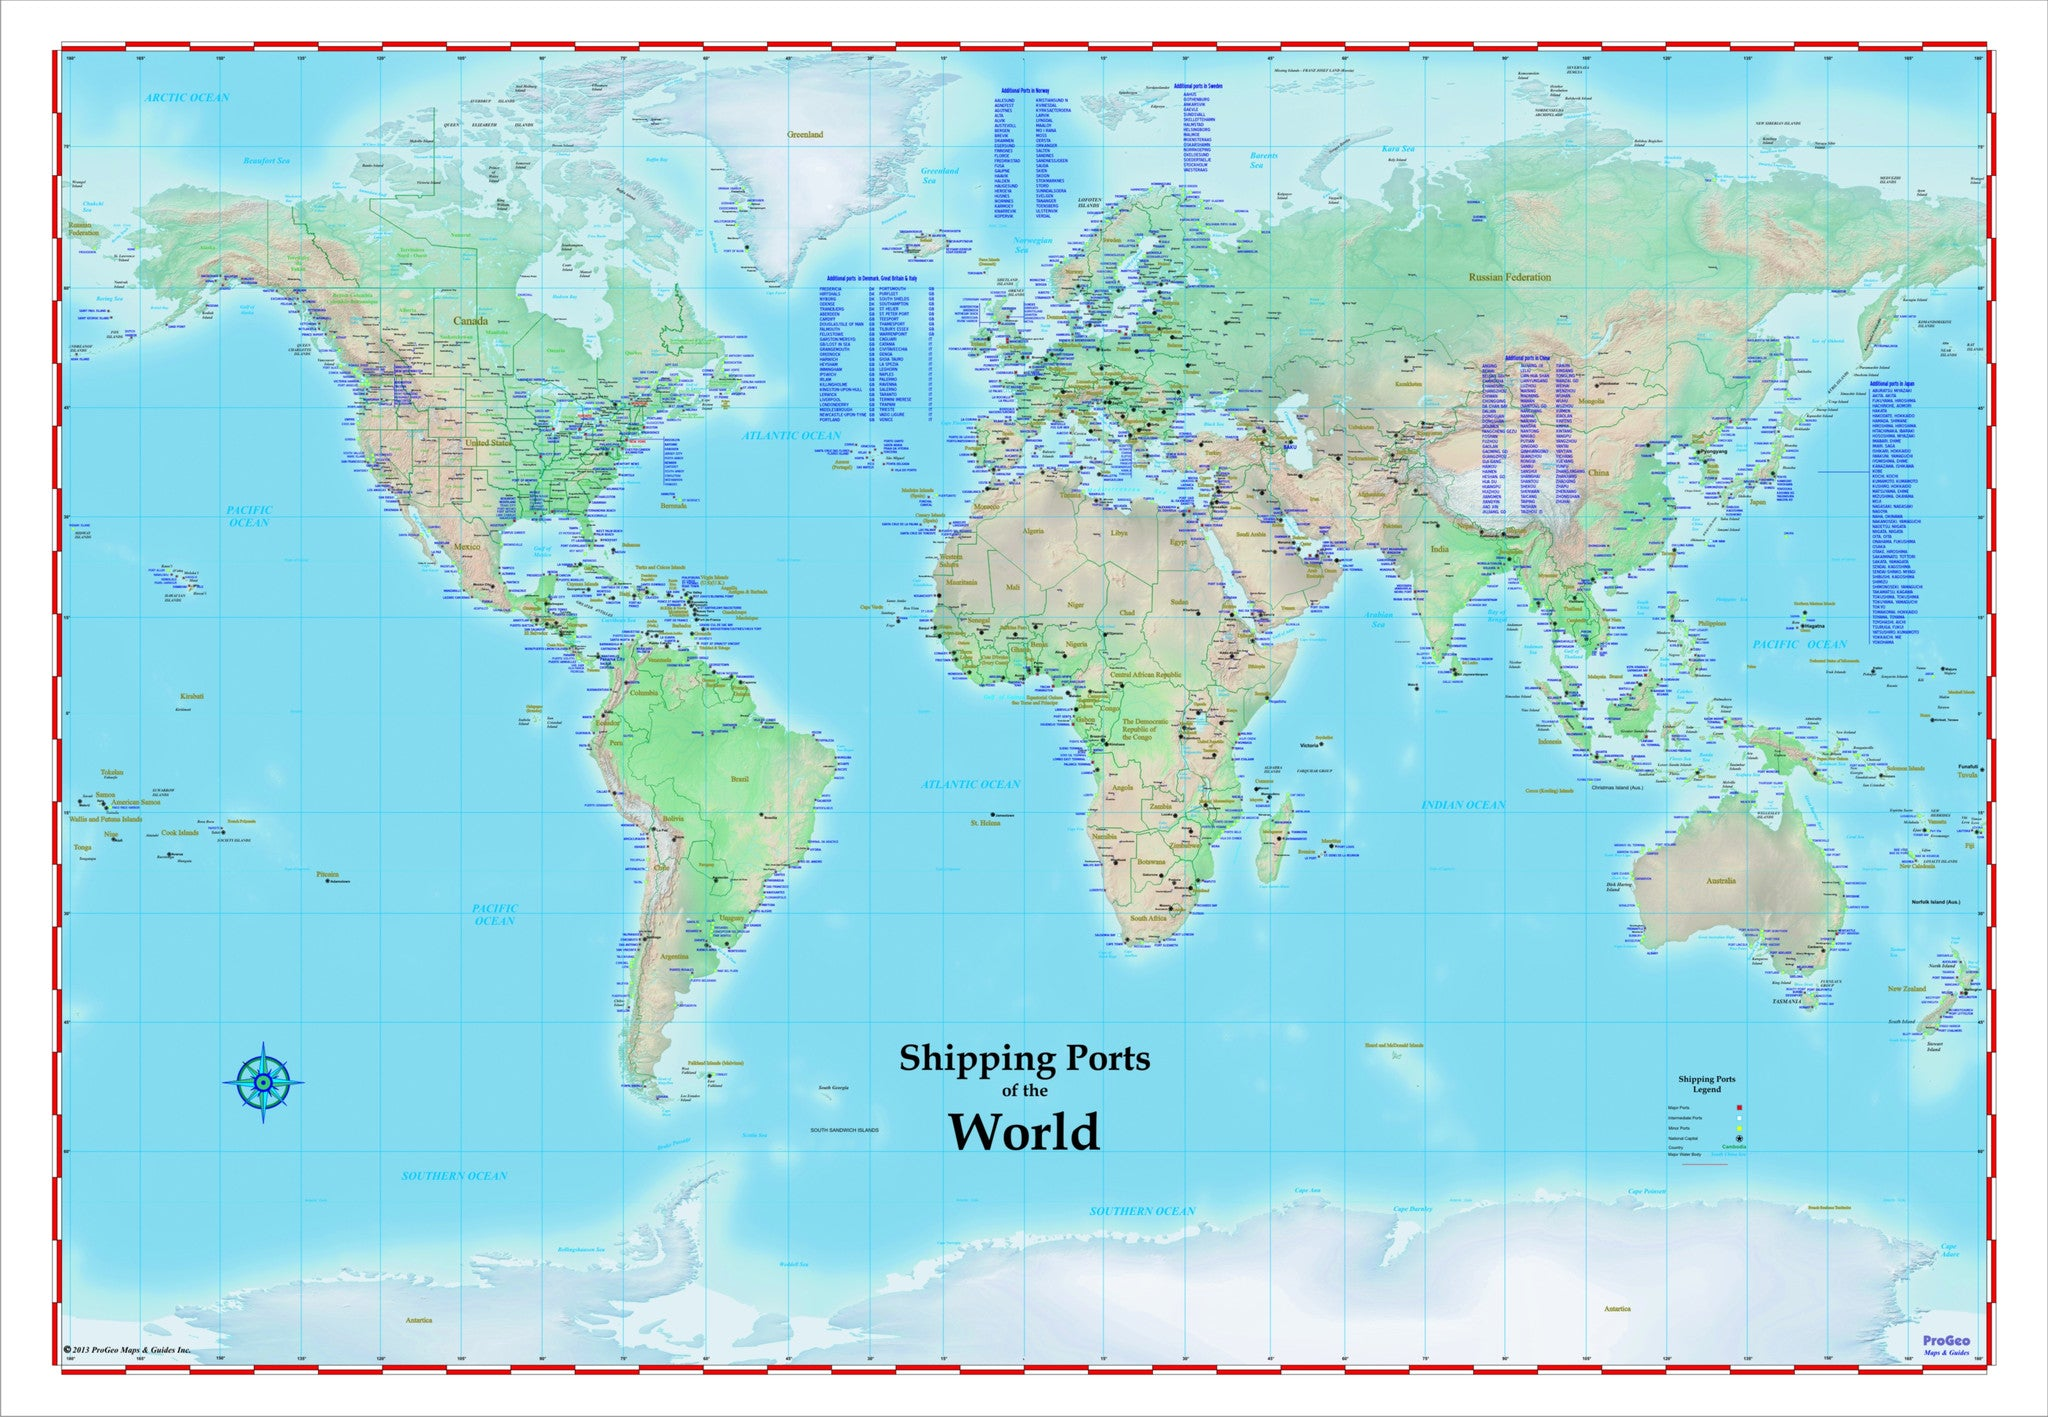 World Shipping Ports Map Laminated Rolled ProGeo Maps Guides